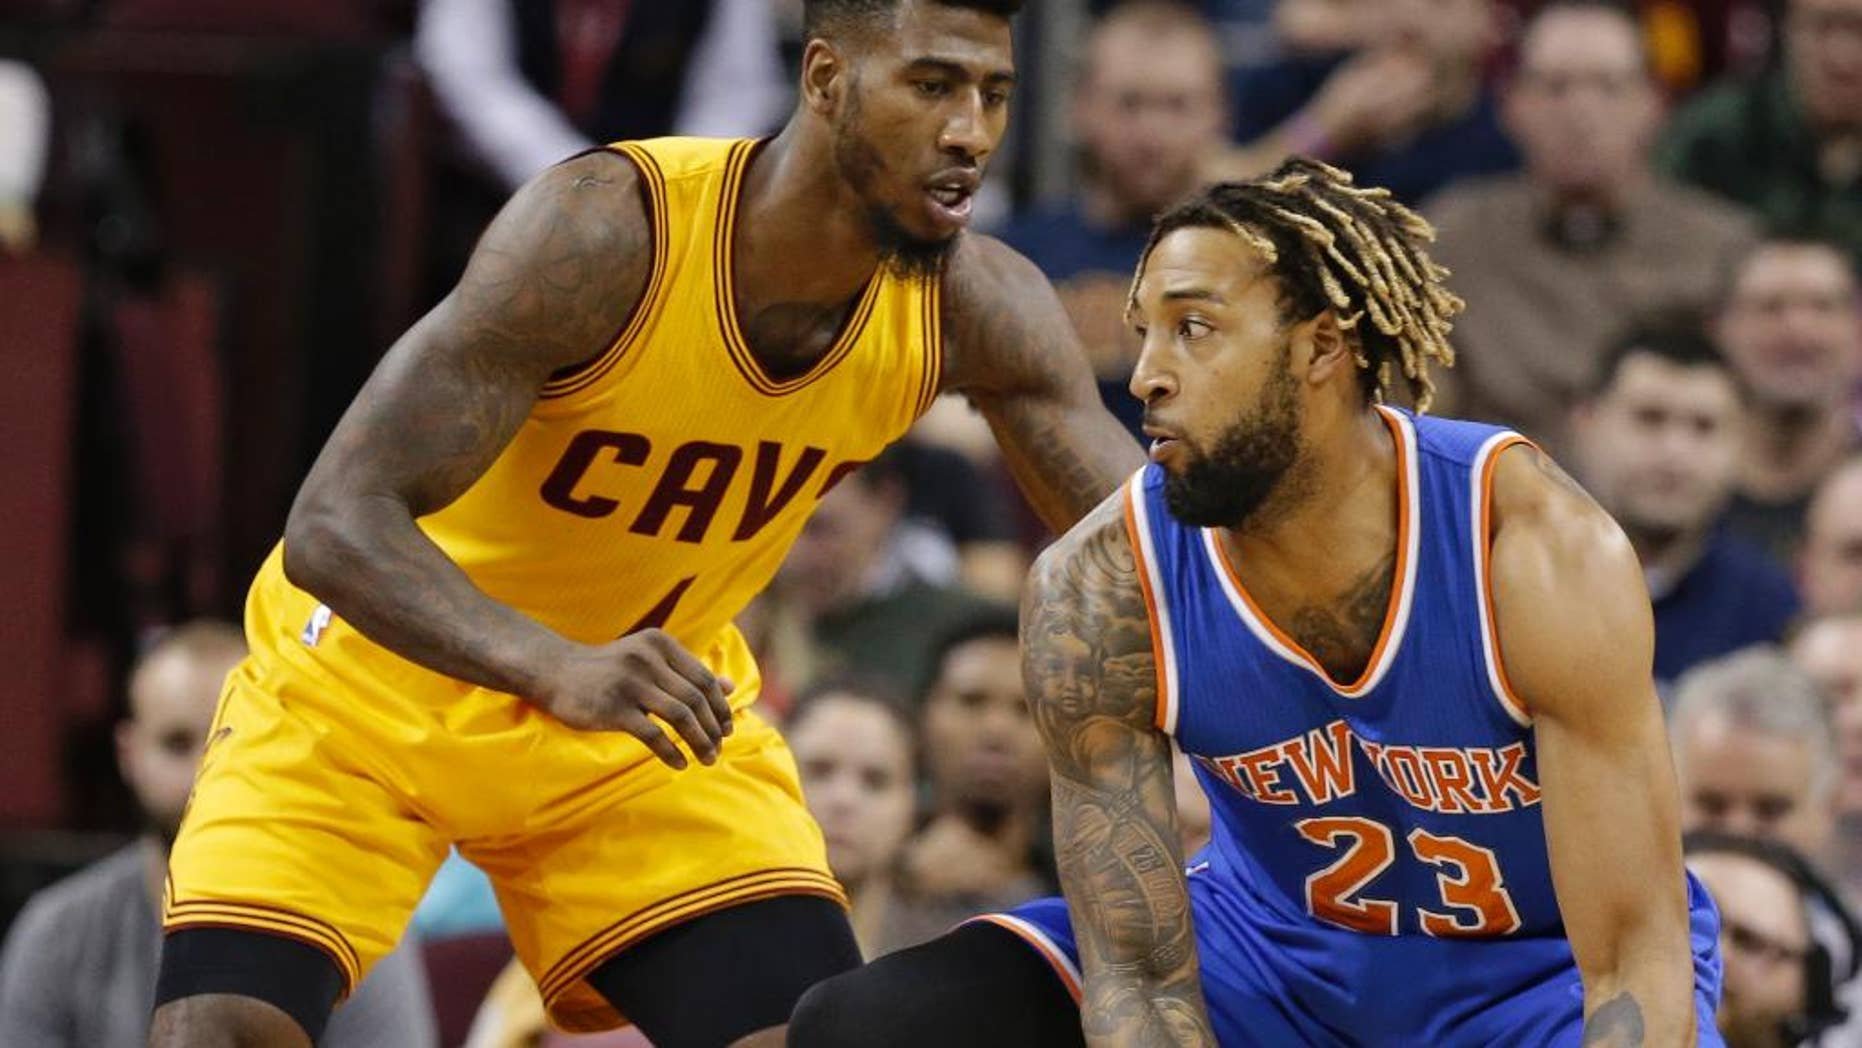 New York Knicks' Derrick Williams (23) drives past Cleveland Cavaliers' Iman Shumpert (4) in the first half of an NBA basketball game Wednesday, Dec. 23, 2015, in Cleveland. The Cavaliers won 91-84. (AP Photo/Tony Dejak)